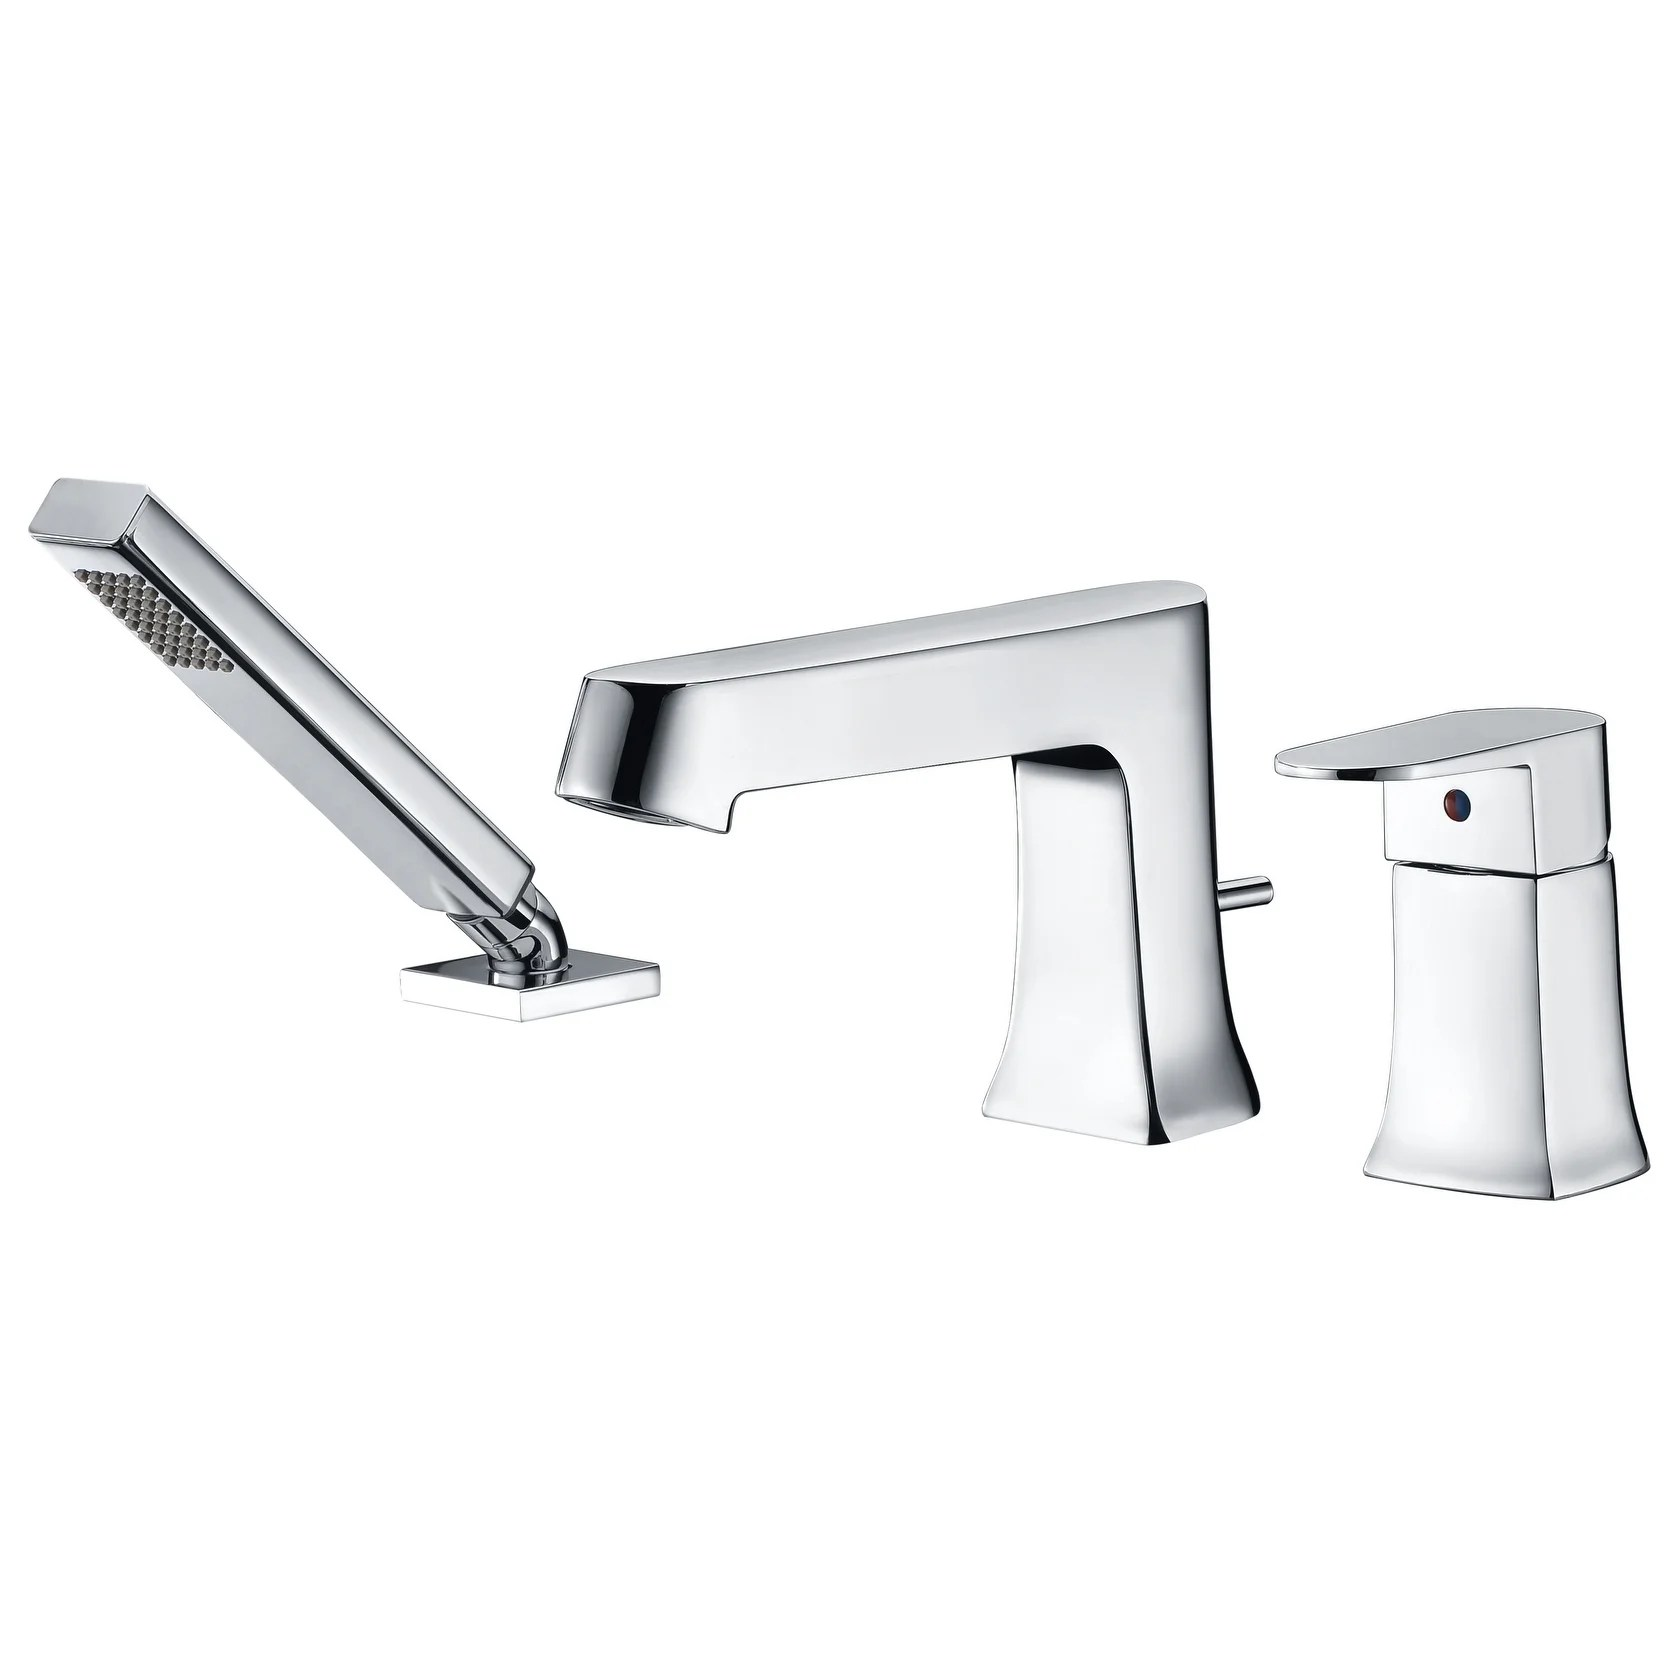 anzzi rin single handle deck mount roman tub faucet with handheld sprayer in polished chrome silver